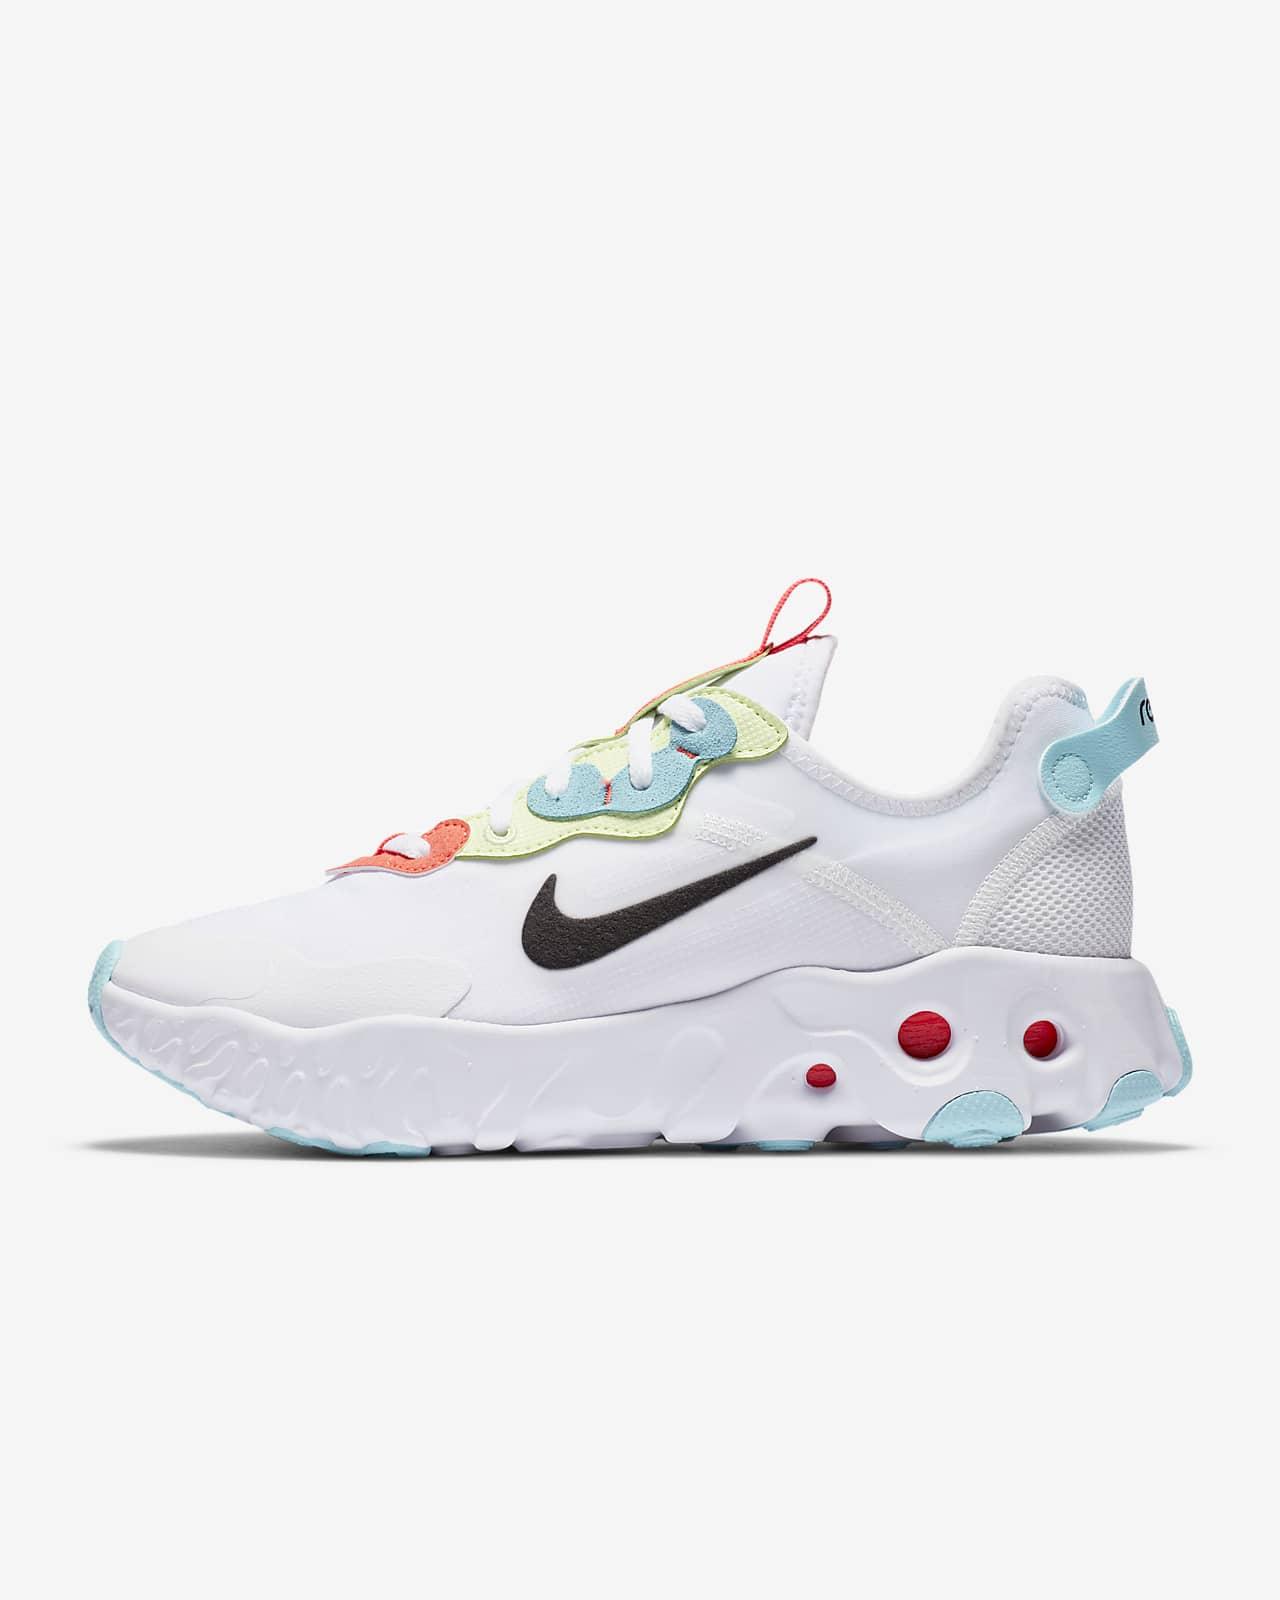 Nike React Art3mis 女子运动鞋